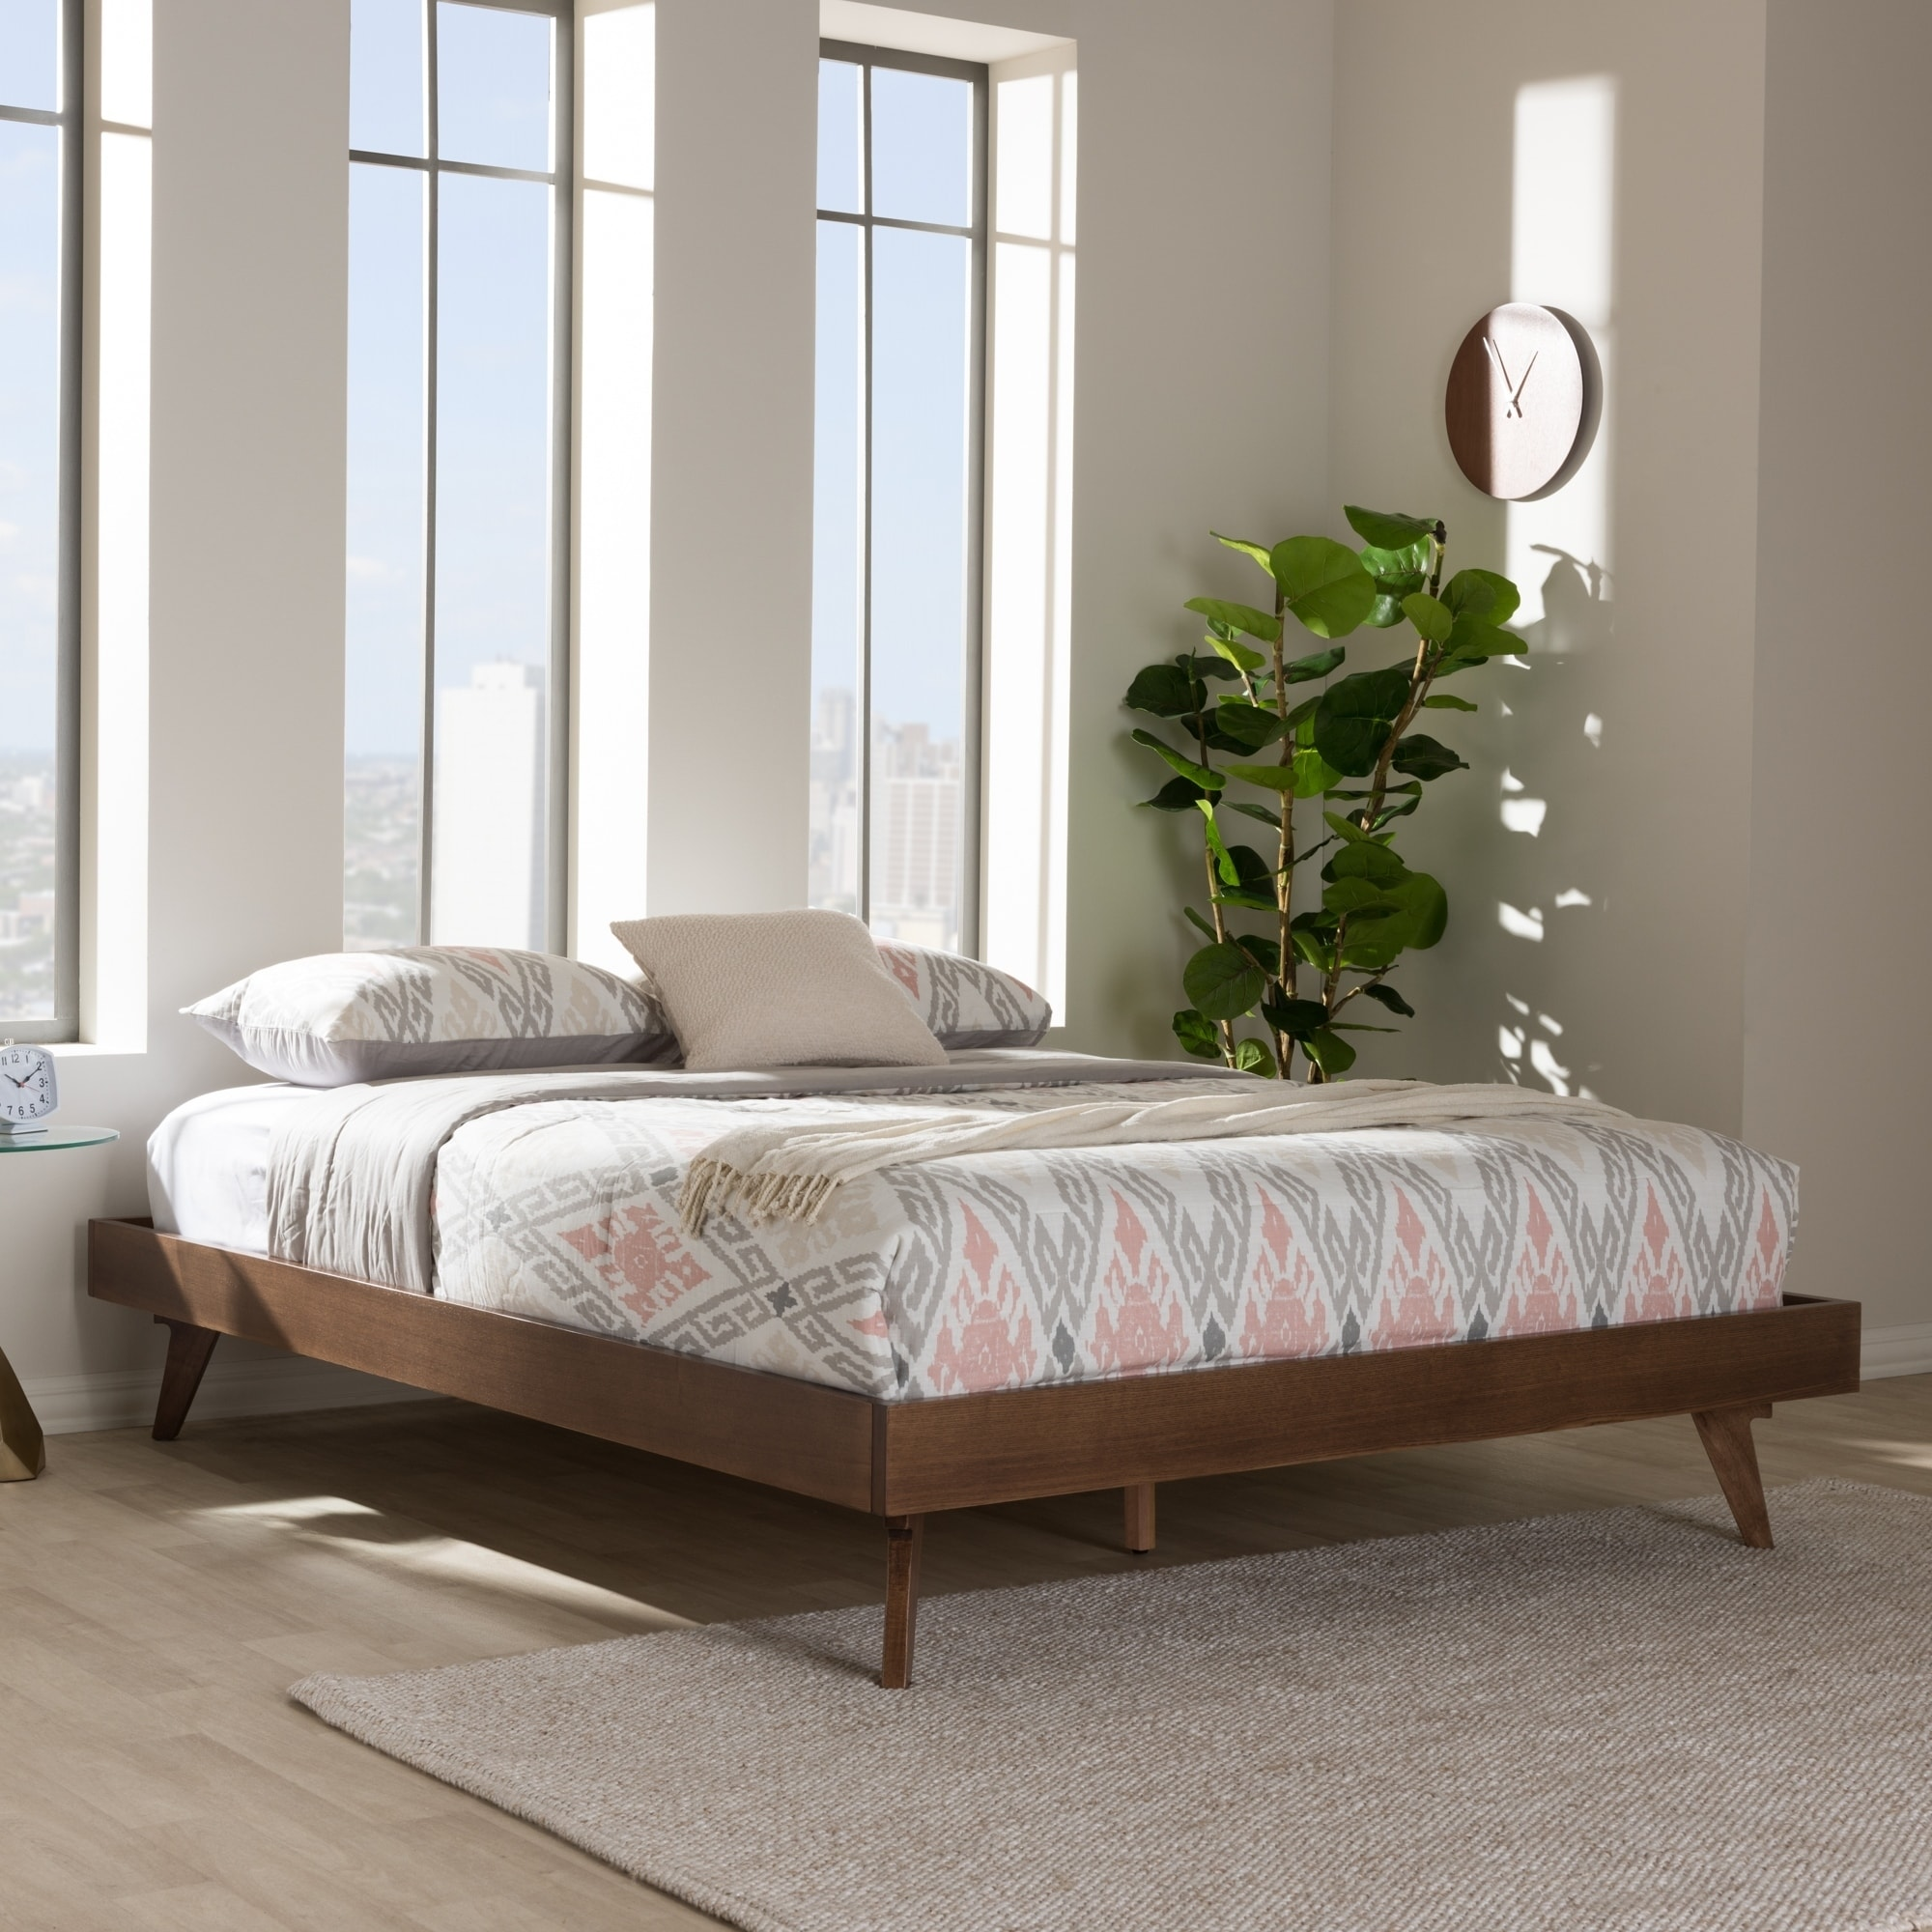 Details About Mid Century Walnut Brown Wood Bed Frame By Baxton Studio